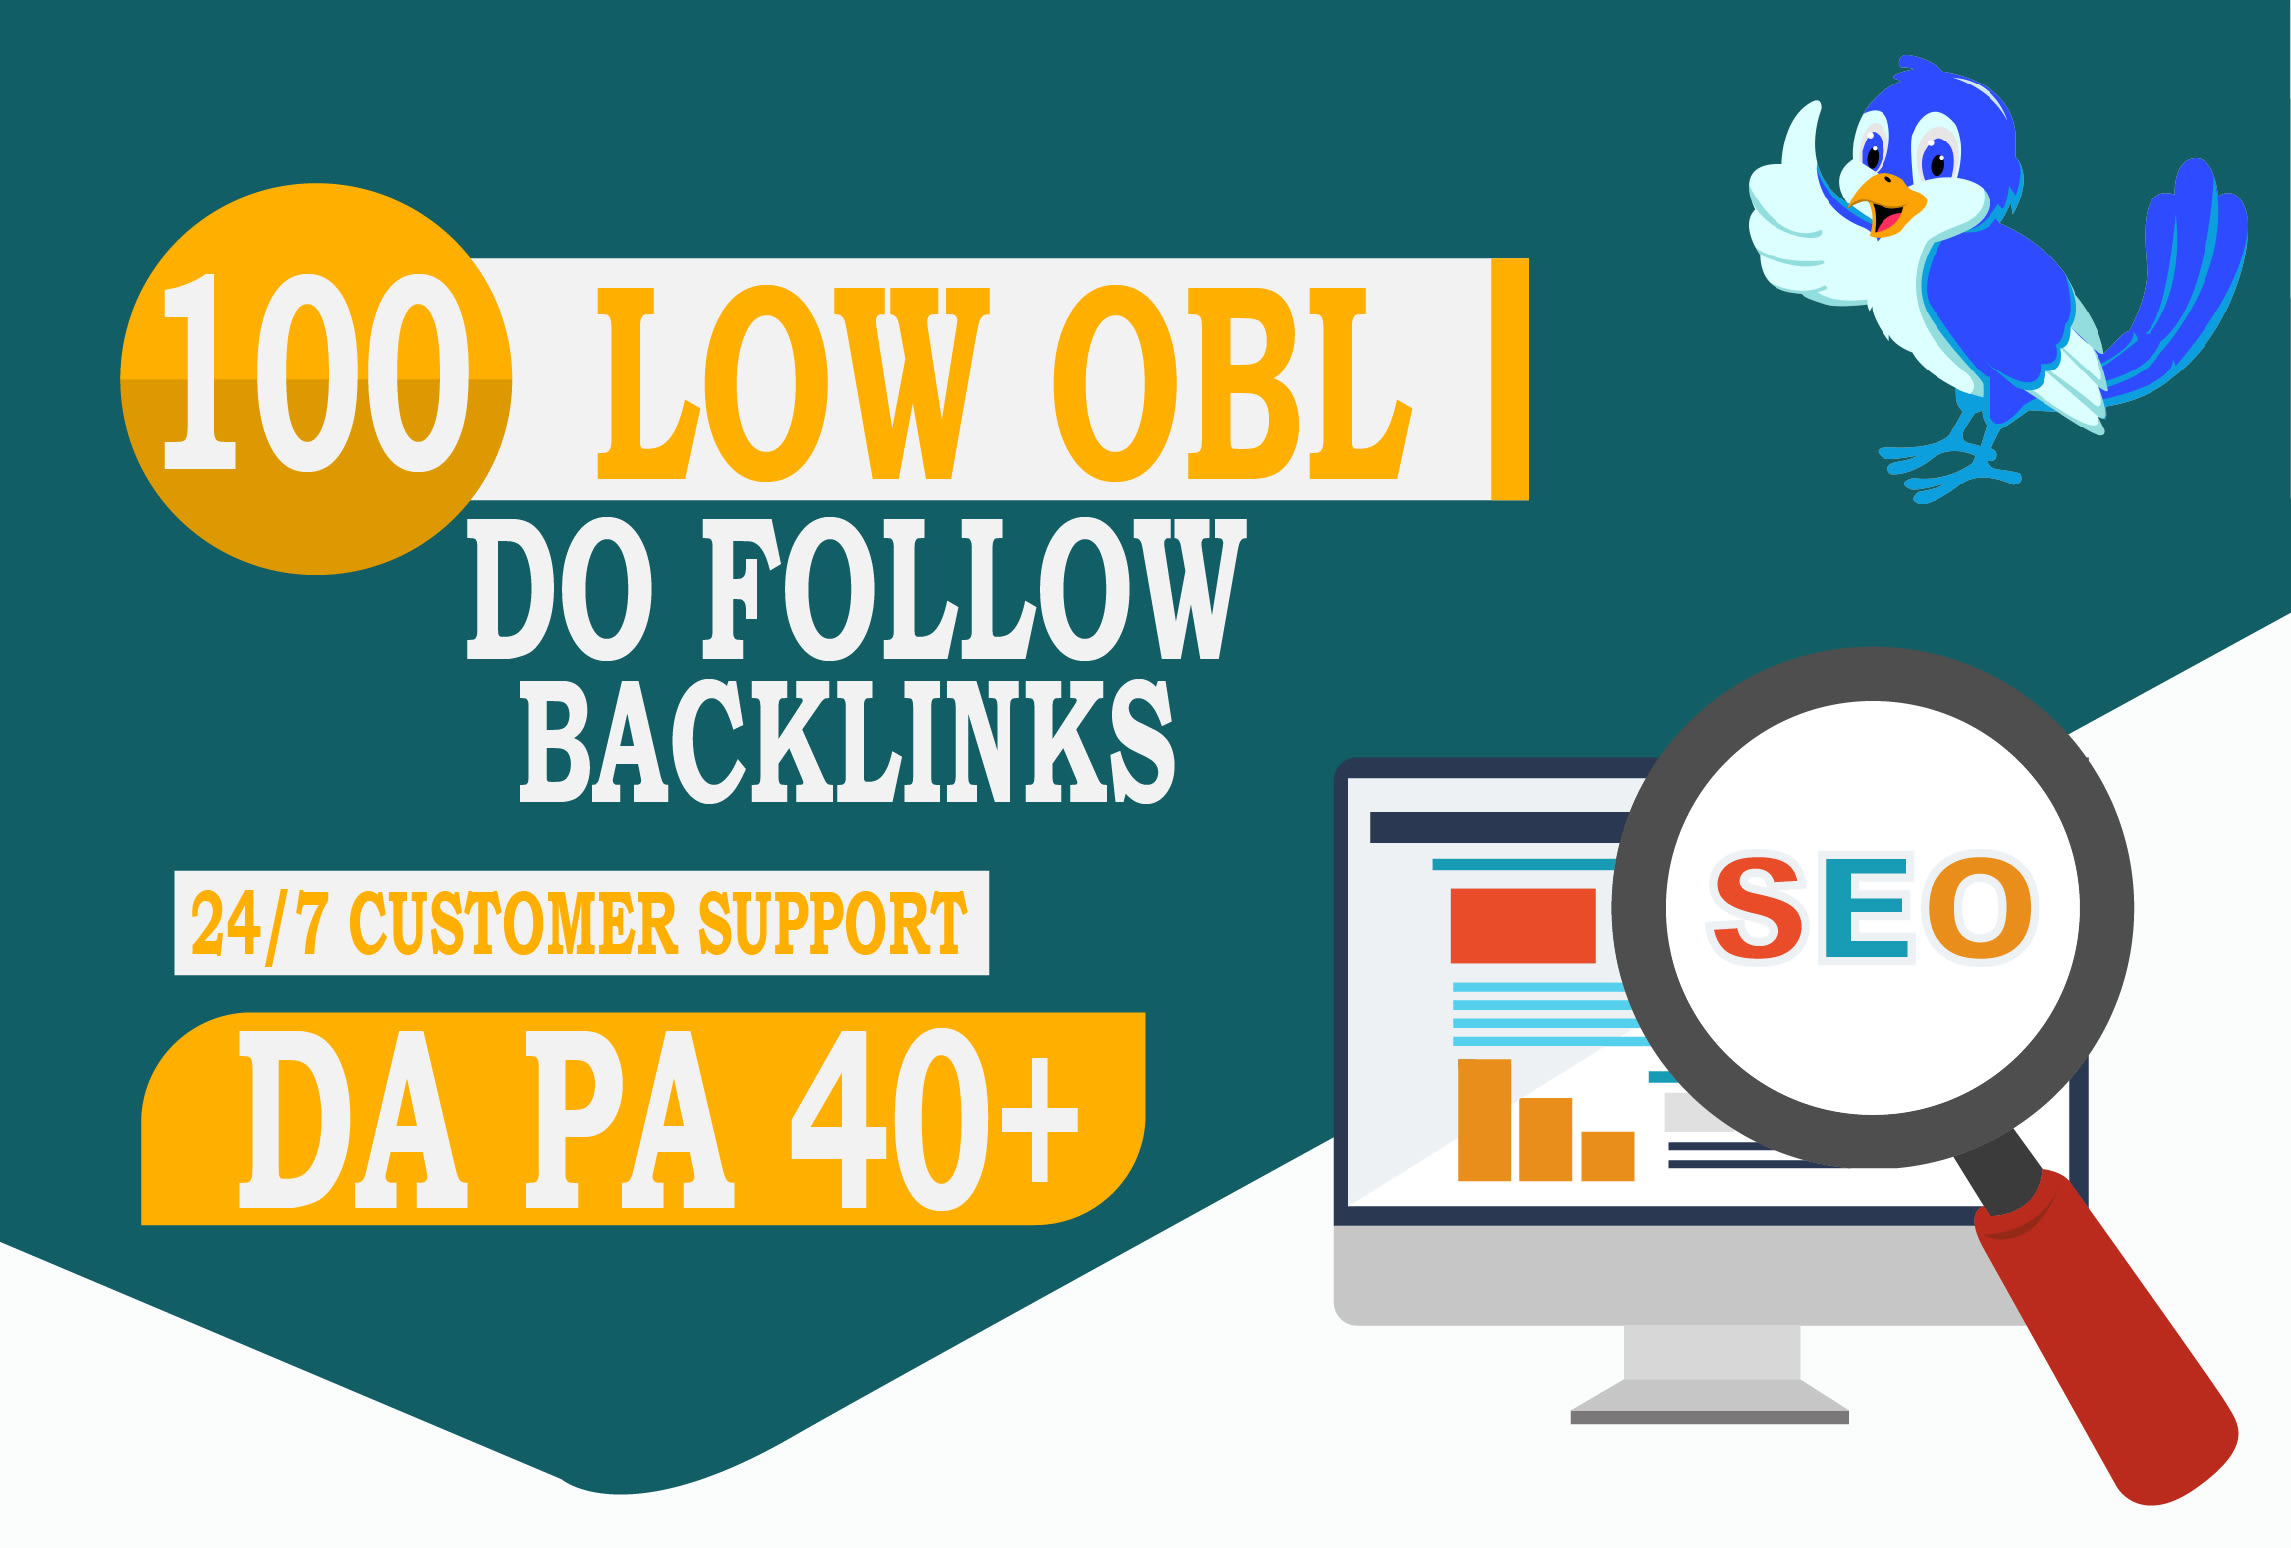 I will do 40 low obl blog comments